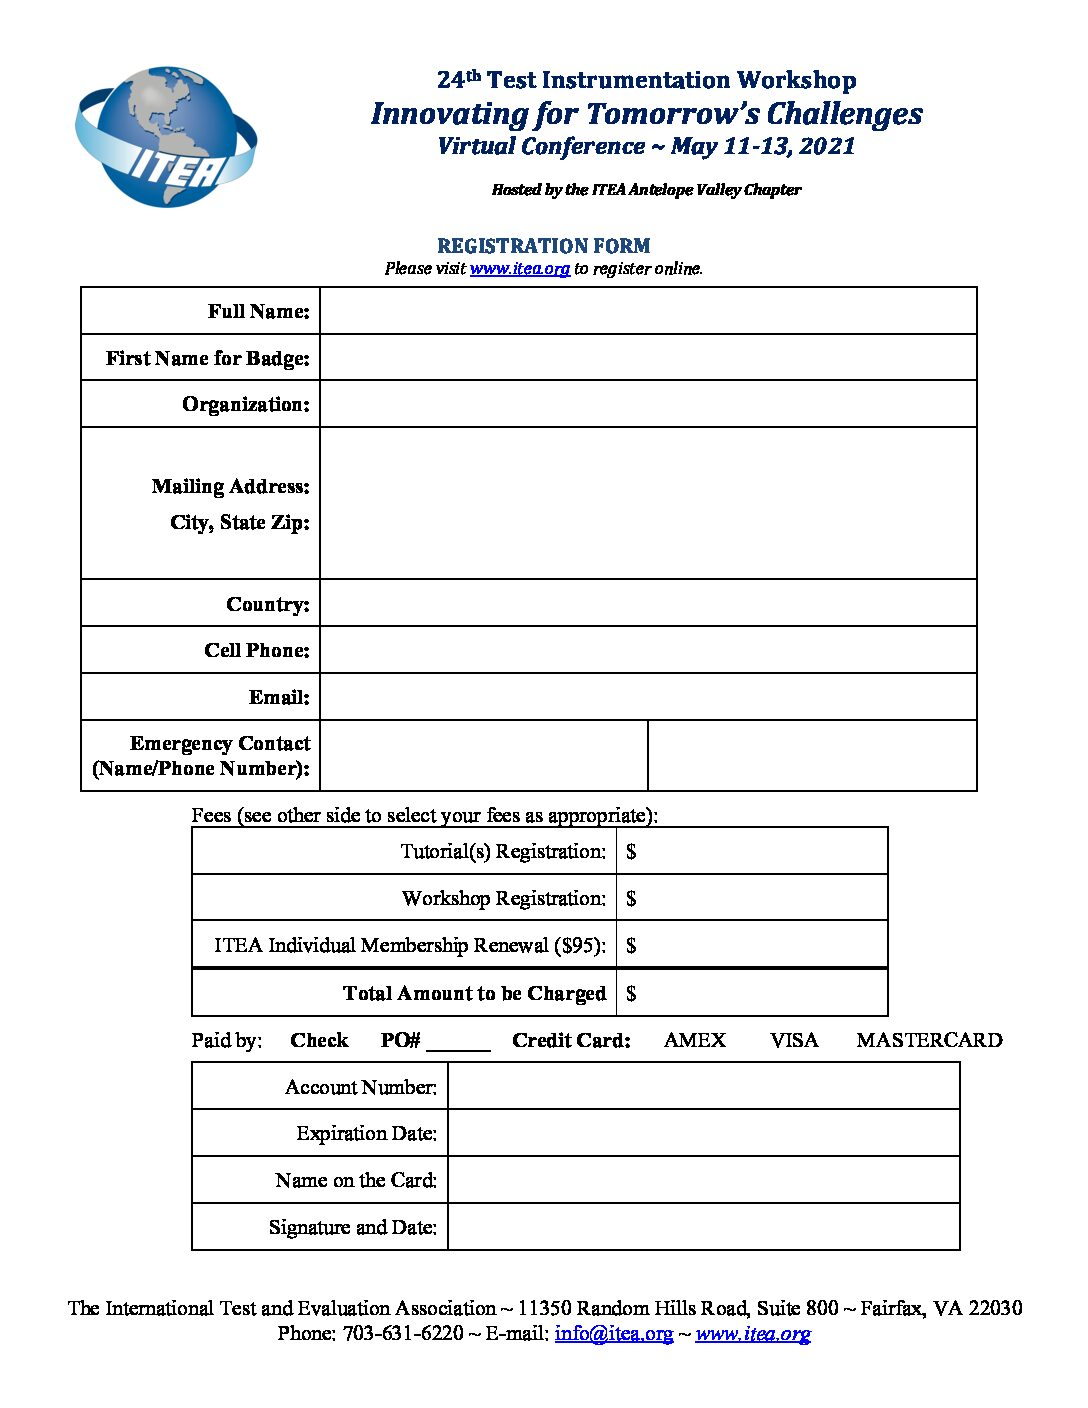 2021 TIW Registration Form_new rates